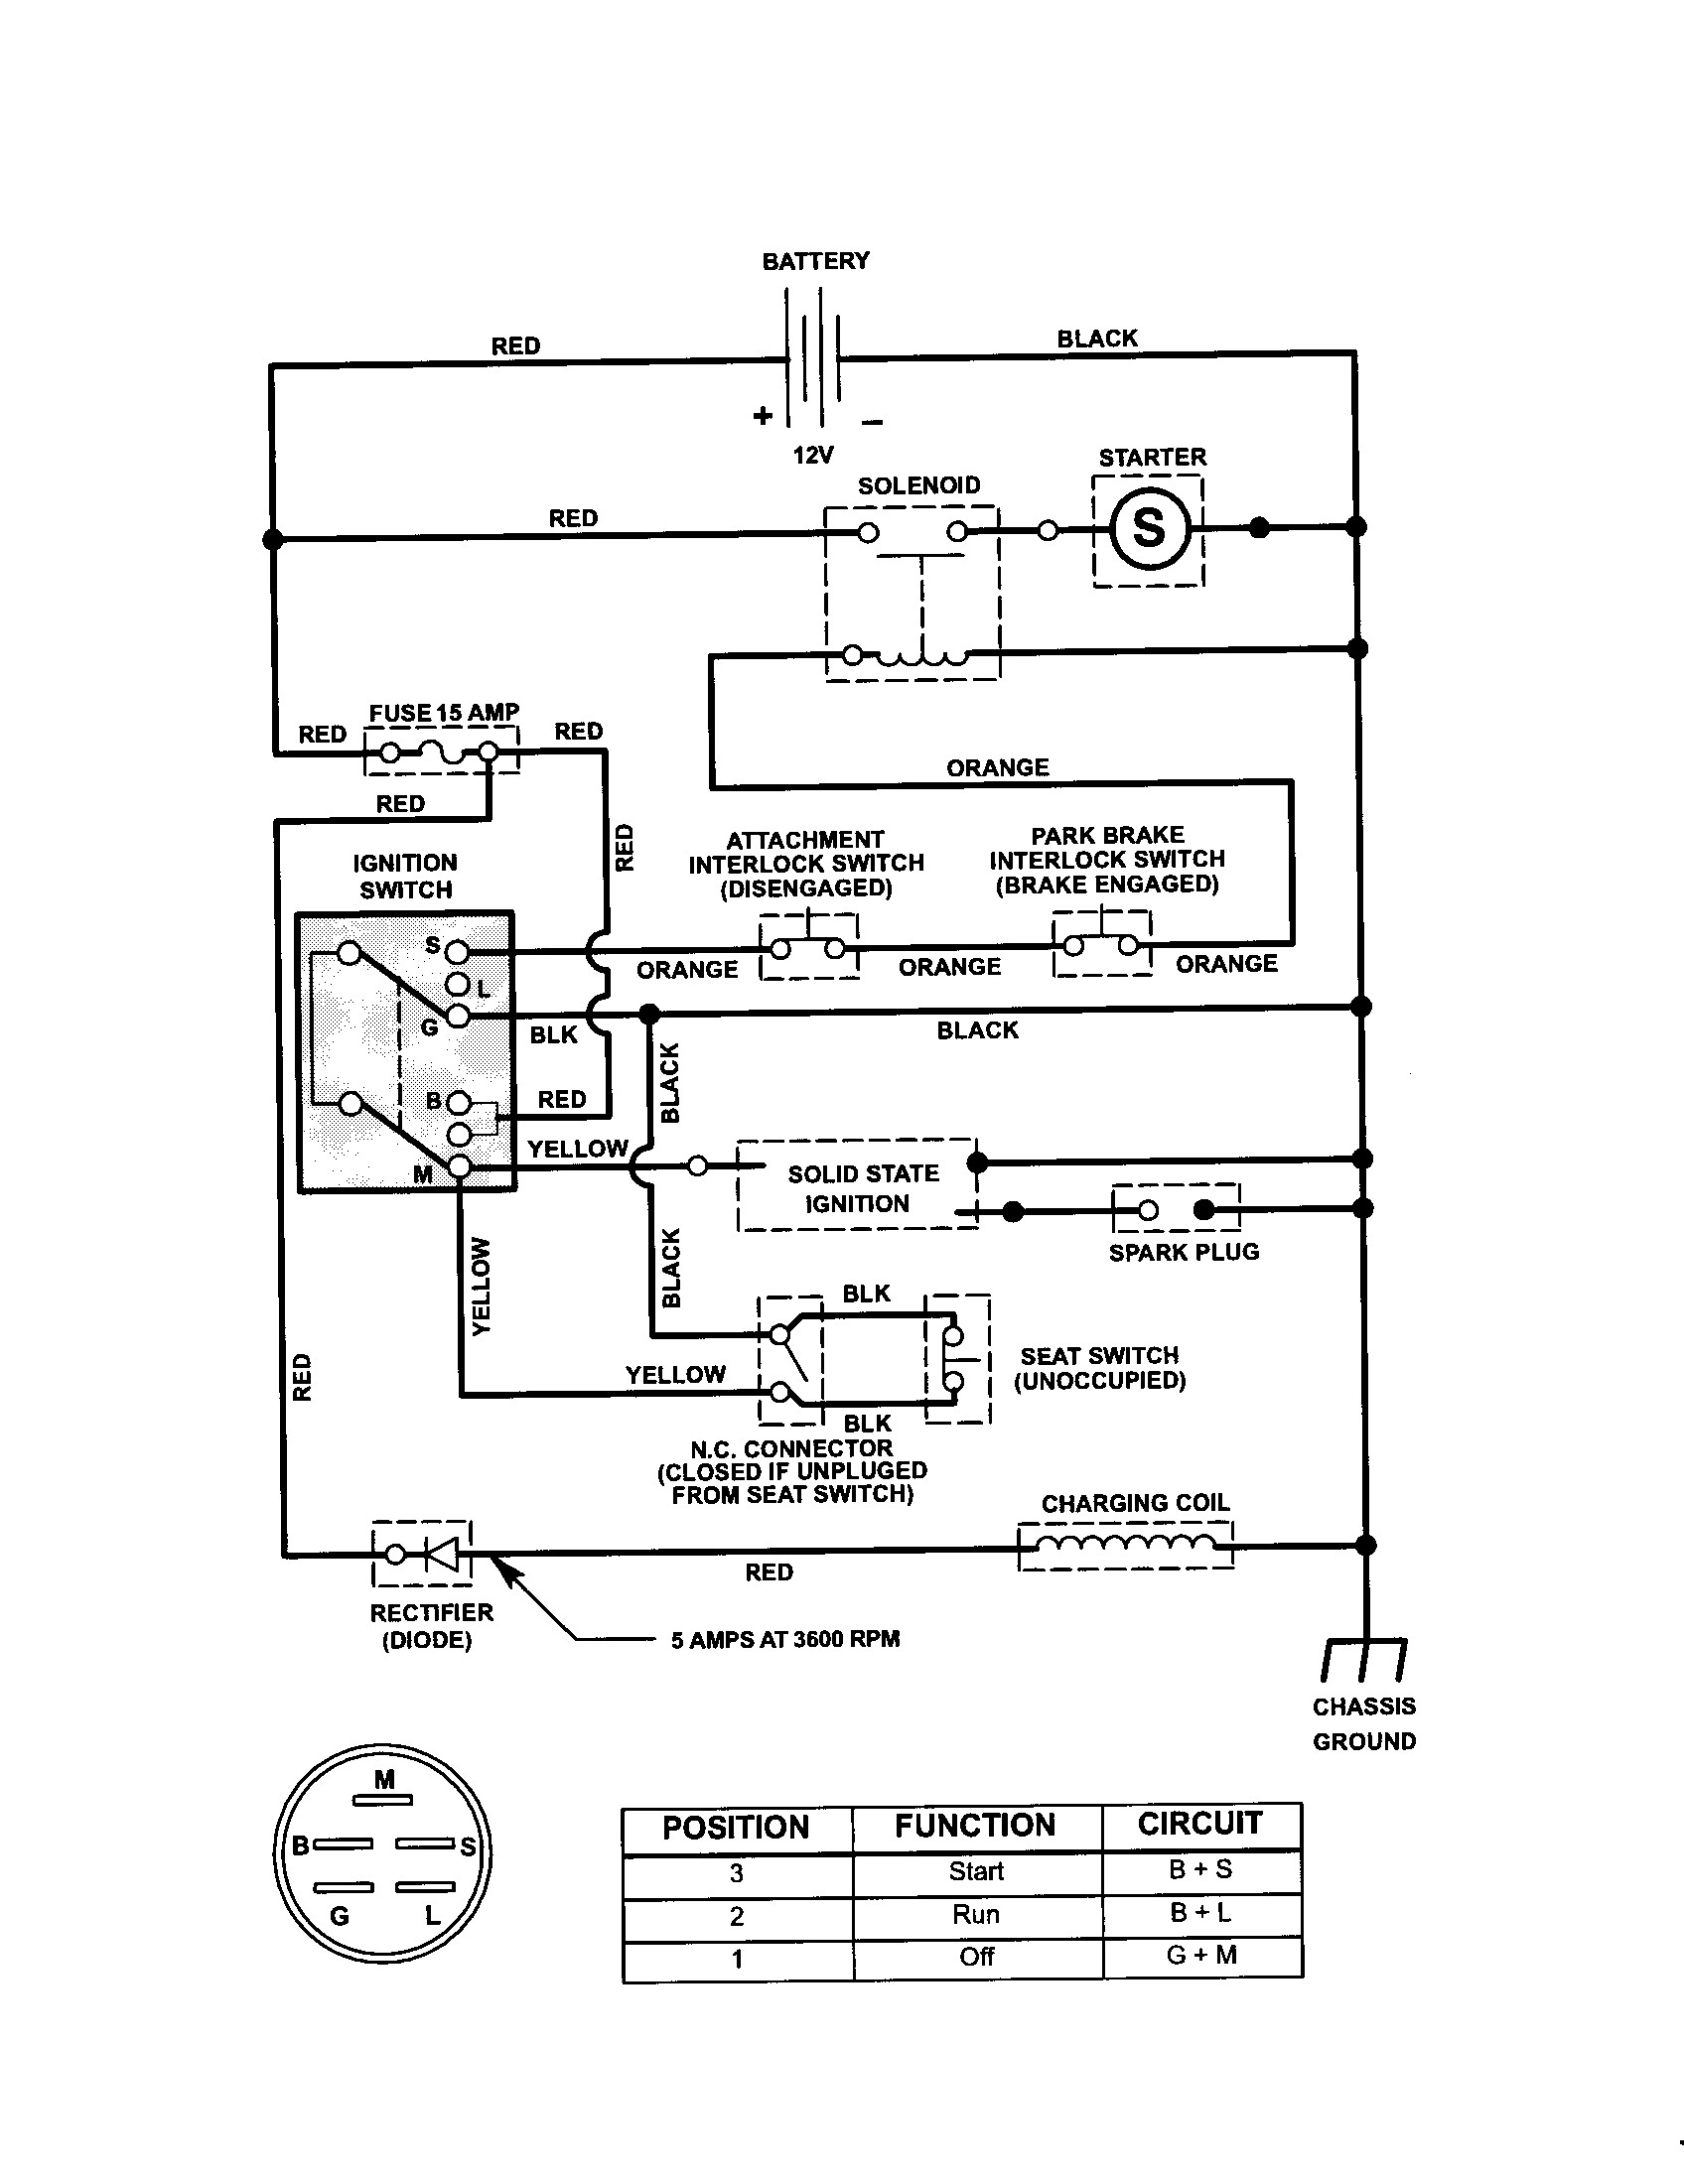 hight resolution of craftsman wiring schematic wiring diagram sample craftsman wiring diagram riding lawn mower craftsman wiring diagram